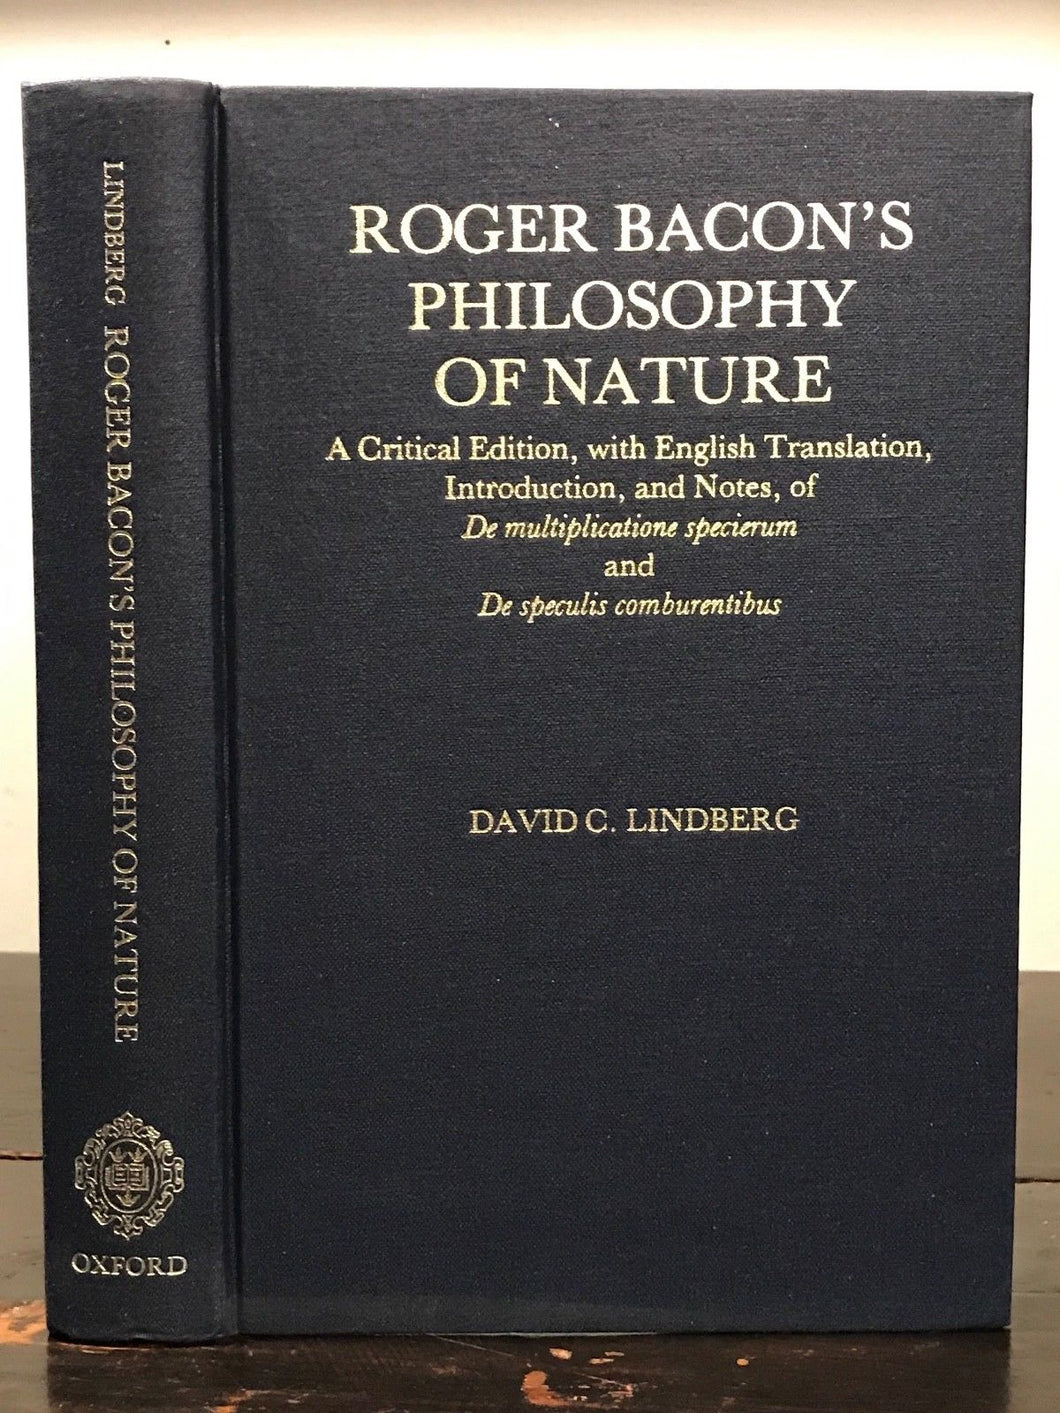 ROGER BACON'S PHILOSOPHY OF NATURE - D. Lindberg - 1st Ed, 1983